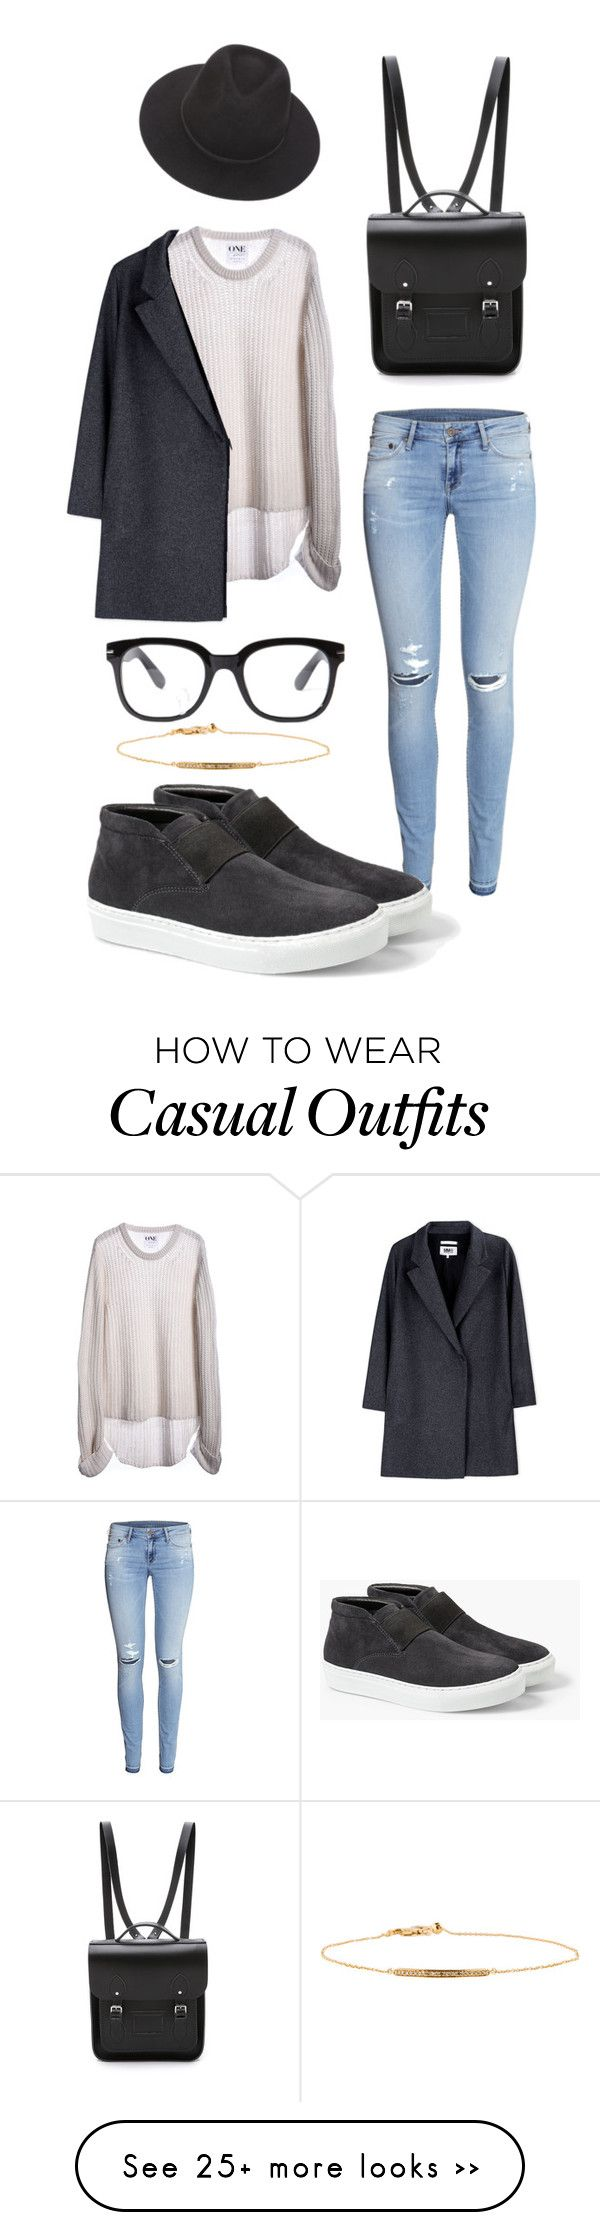 """""""Casual Saturday"""" by nudge-v on Polyvore featuring mode, Forever 21, Brixton, Monica Vinader, One Teaspoon, H&M, MM6 Maison Margiela, The Cambridge Satchel Company en MANGO"""